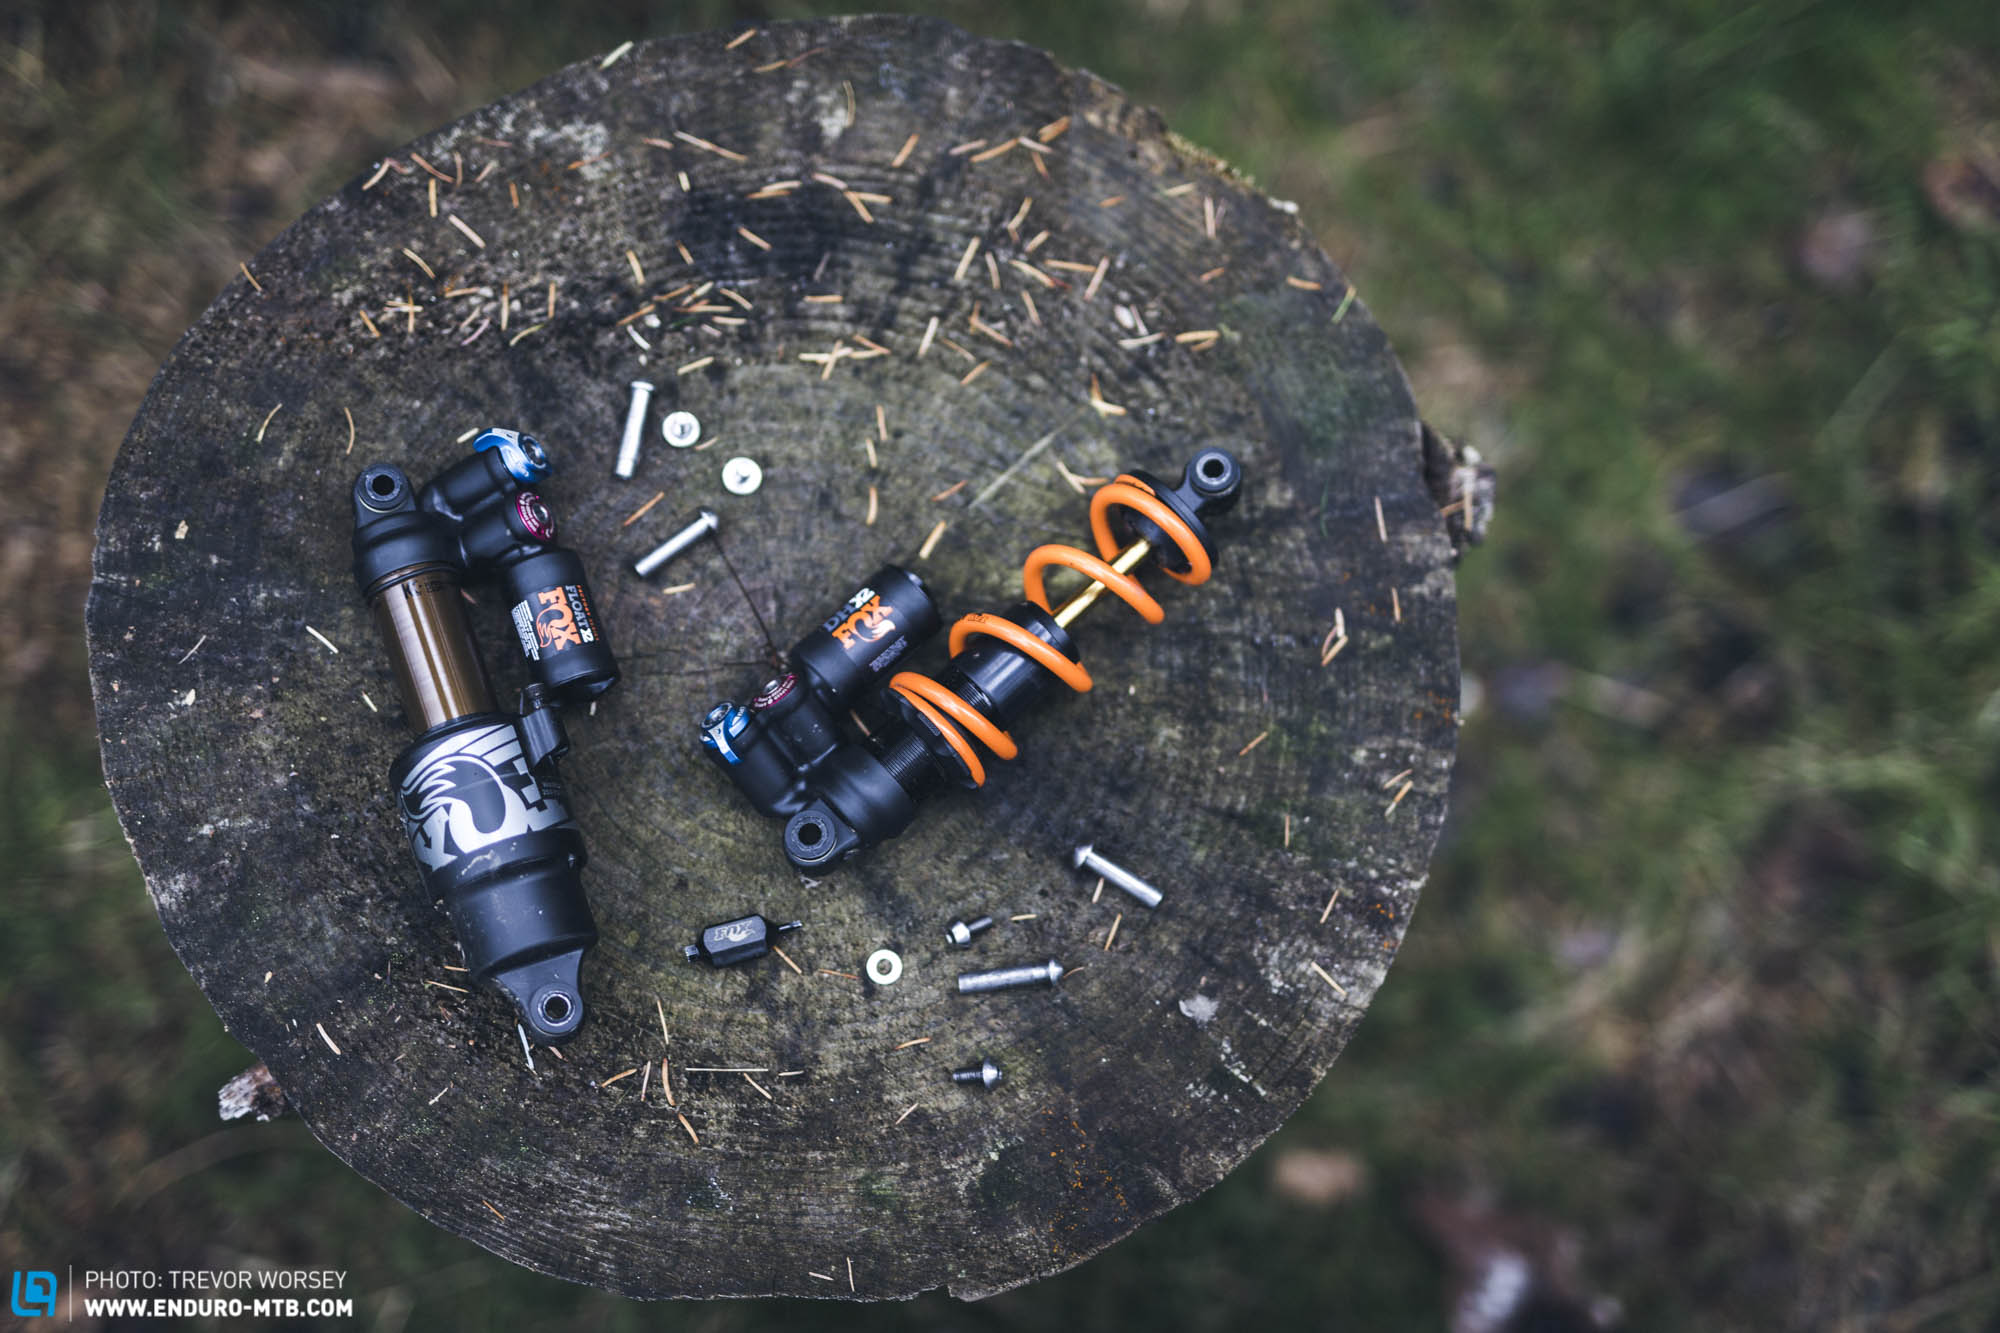 Clash of the Titans: Air versus Coil Shock | ENDURO